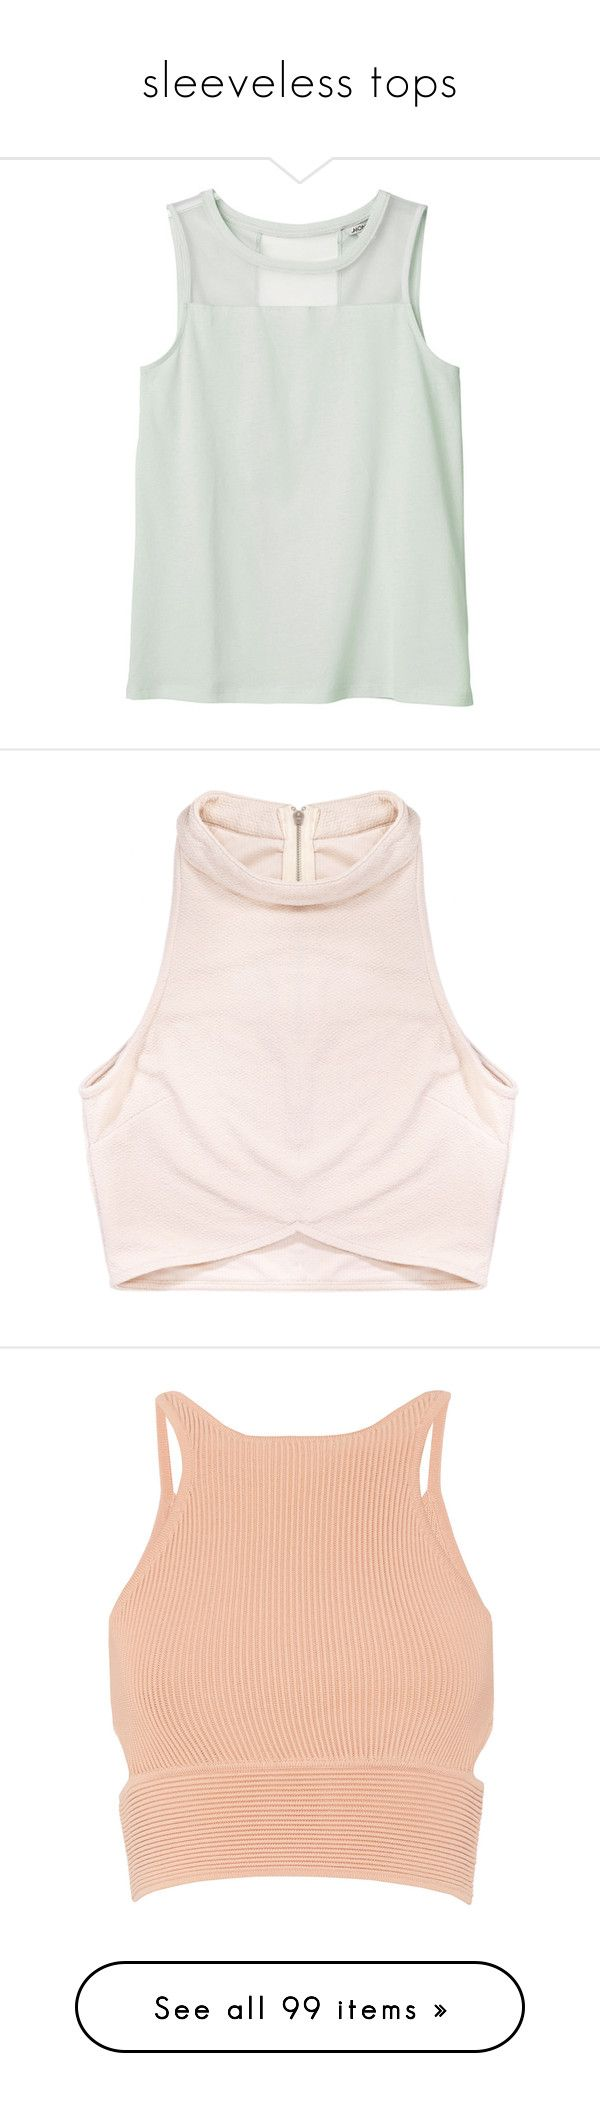 """""""sleeveless tops"""" by ladykrystal ❤ liked on Polyvore featuring tops, shirts, tank tops, tanks, sheer shirt, monki, sheer top, cream top, cotton tank y crop tops"""